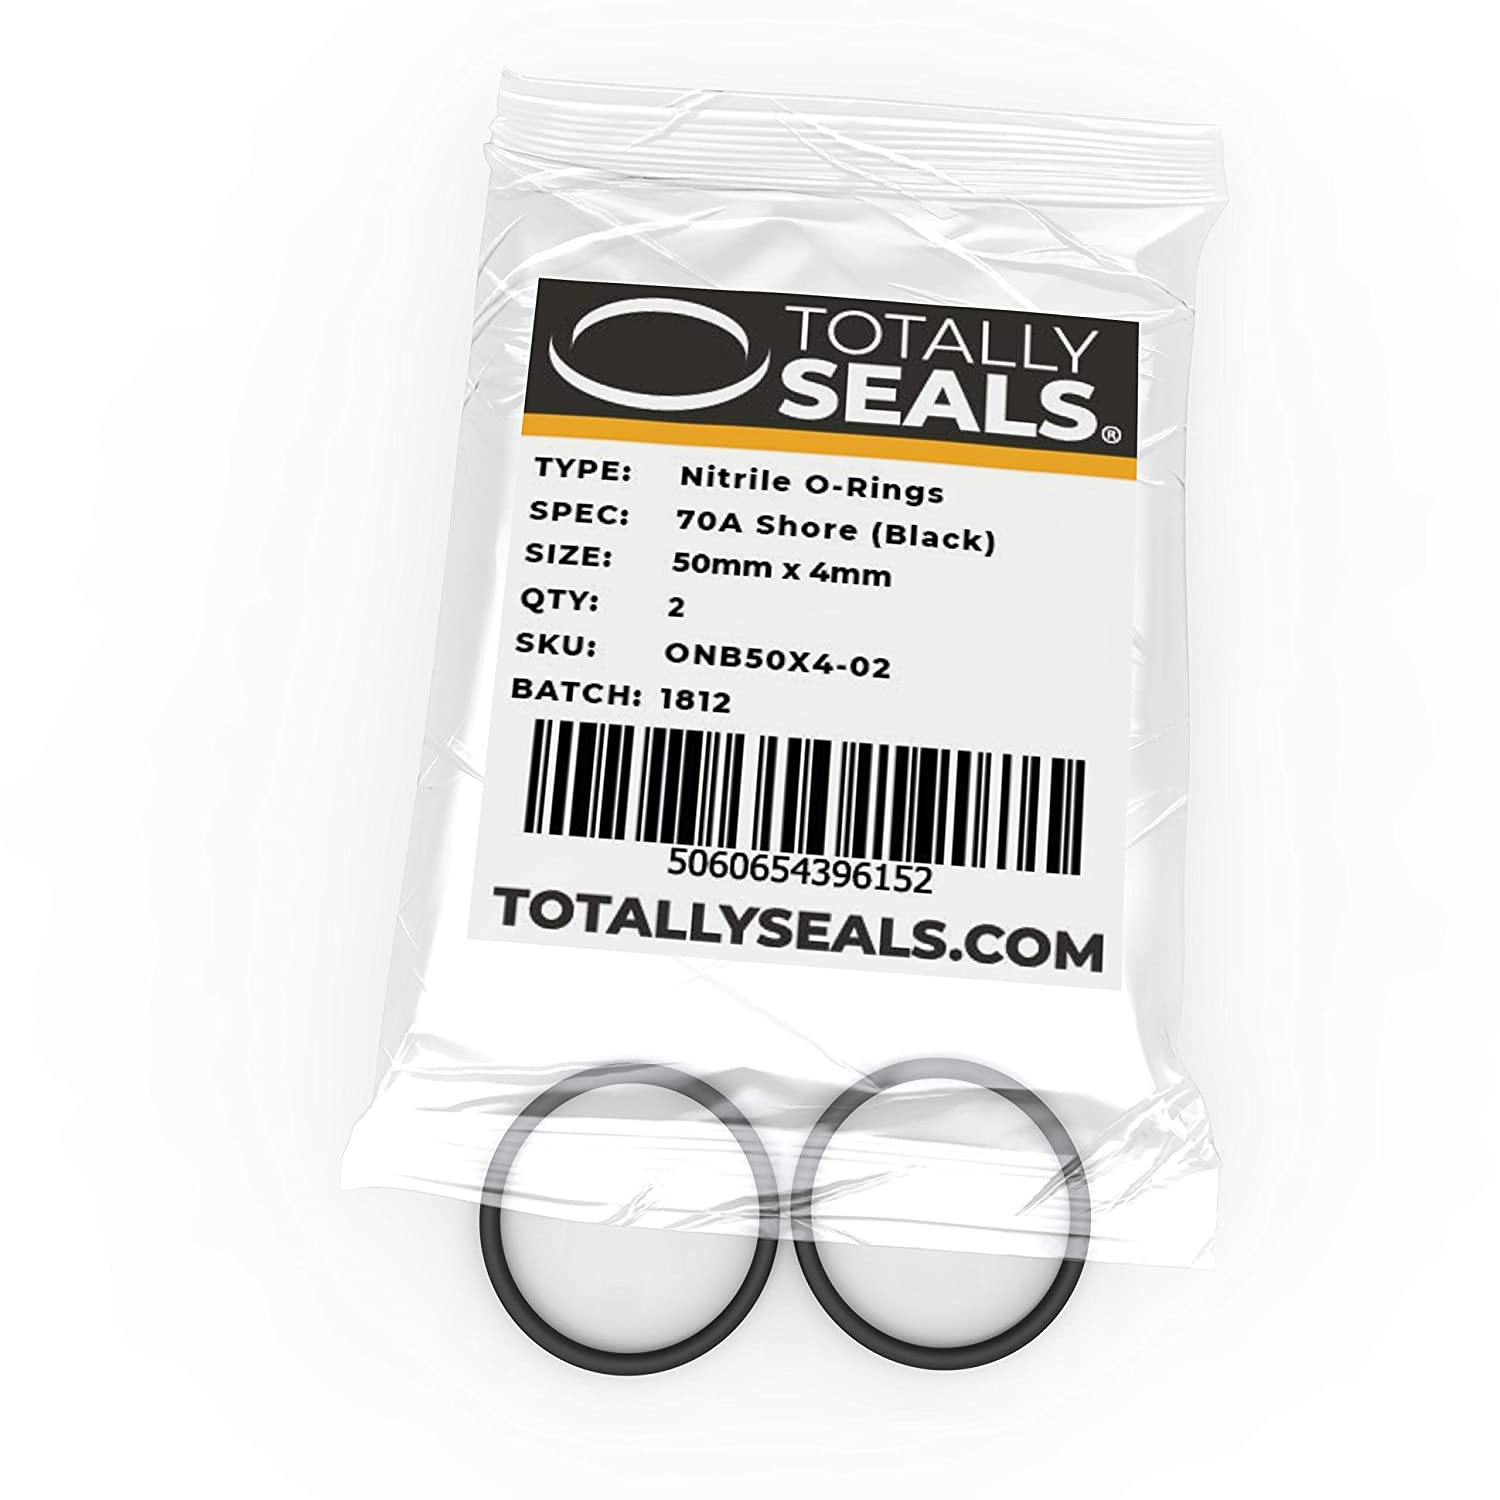 50mm x 4mm (58mm OD) Nitrile Rubber O-Rings 70A Shore Hardness - Pack of 10